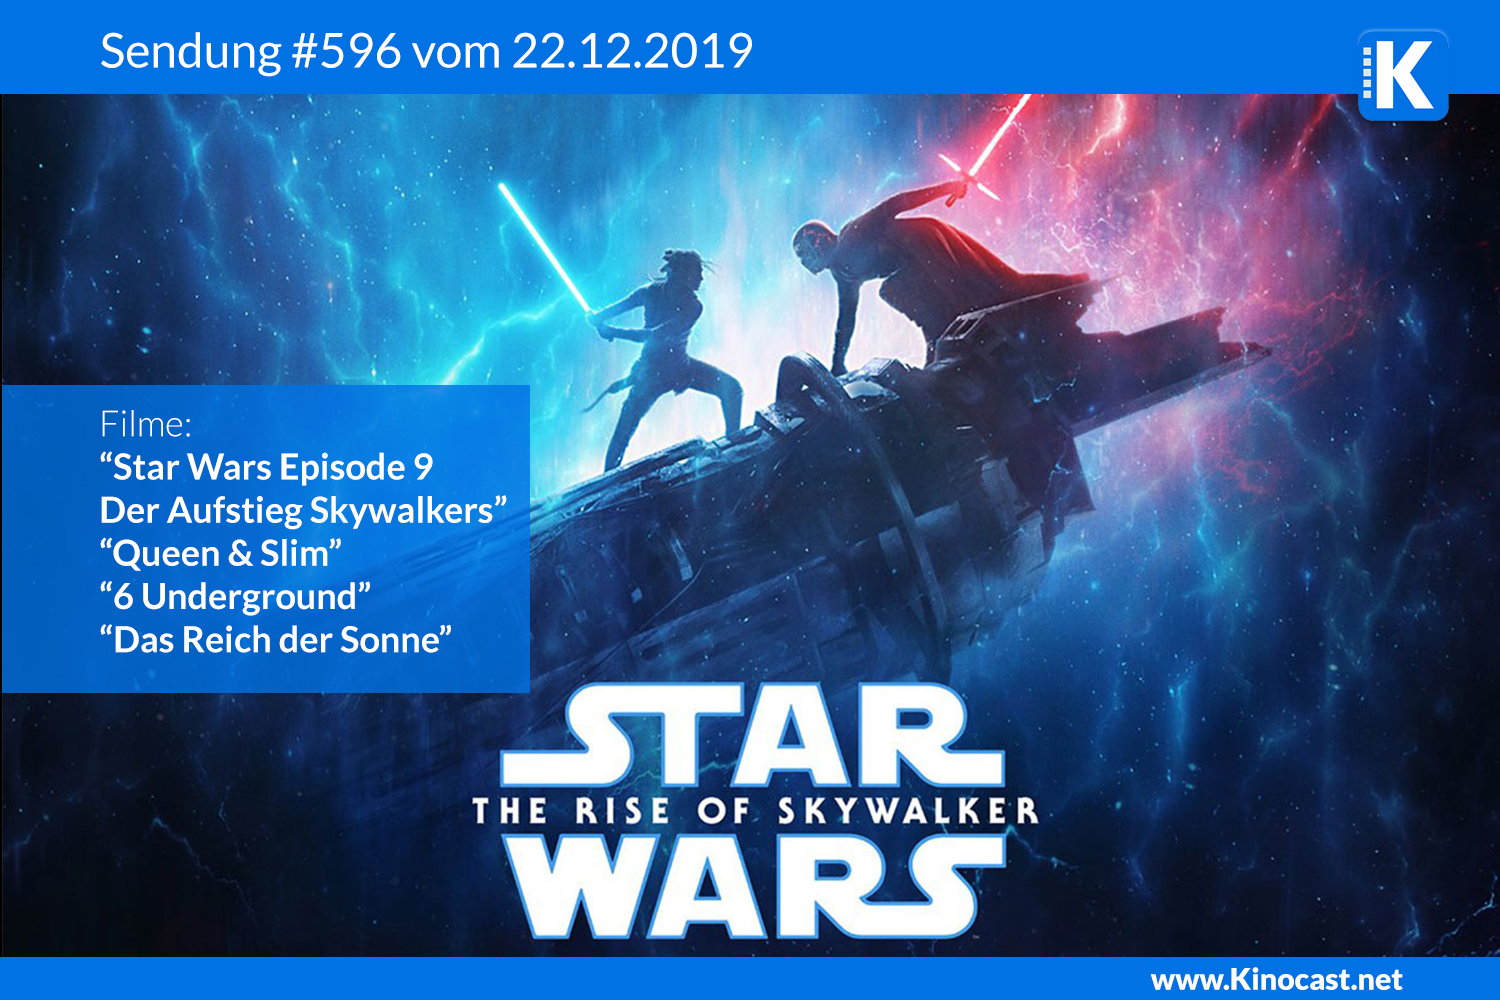 STAR WARS EPISODE Aufstieg Skywalkers Queen Slim Download film german deutsch